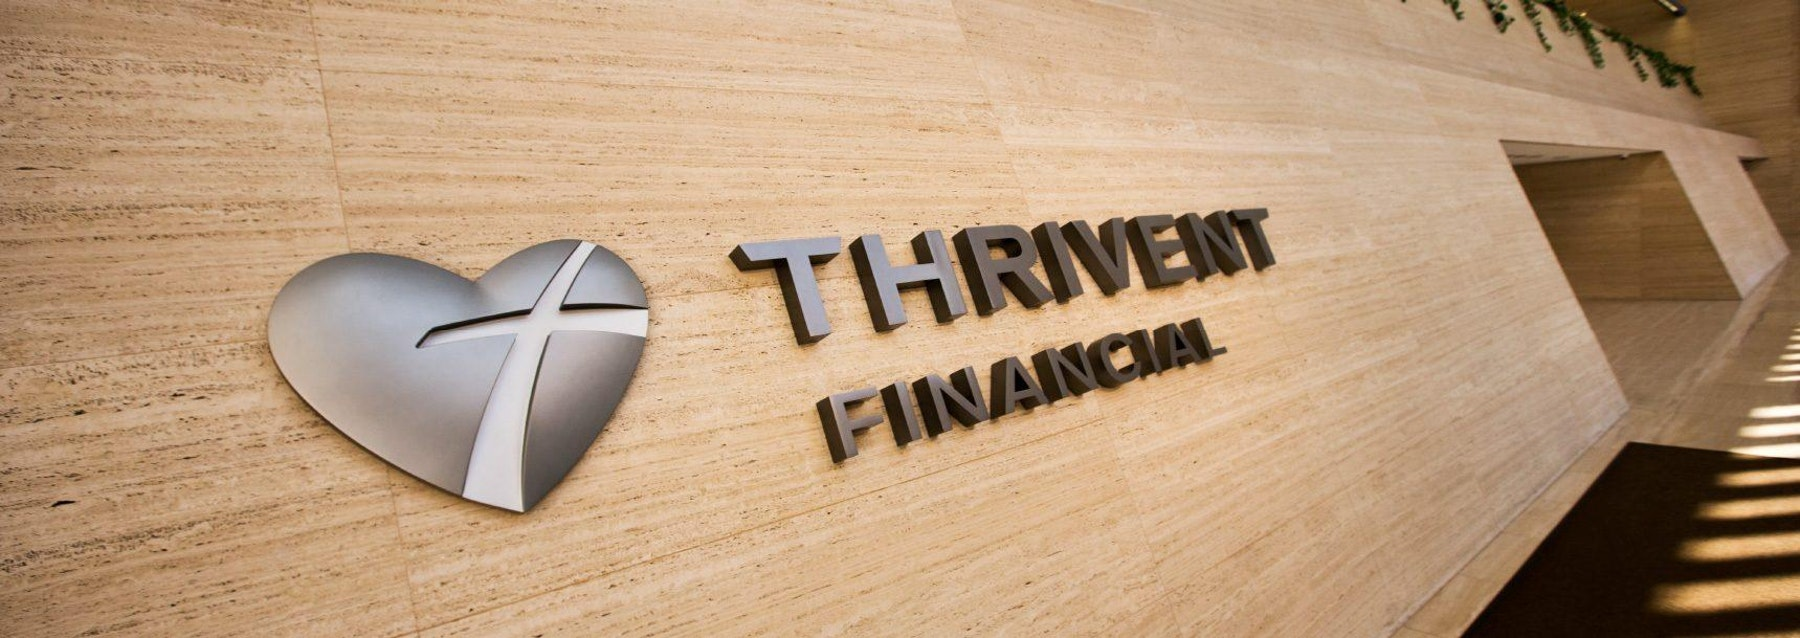 Thrivent signage A